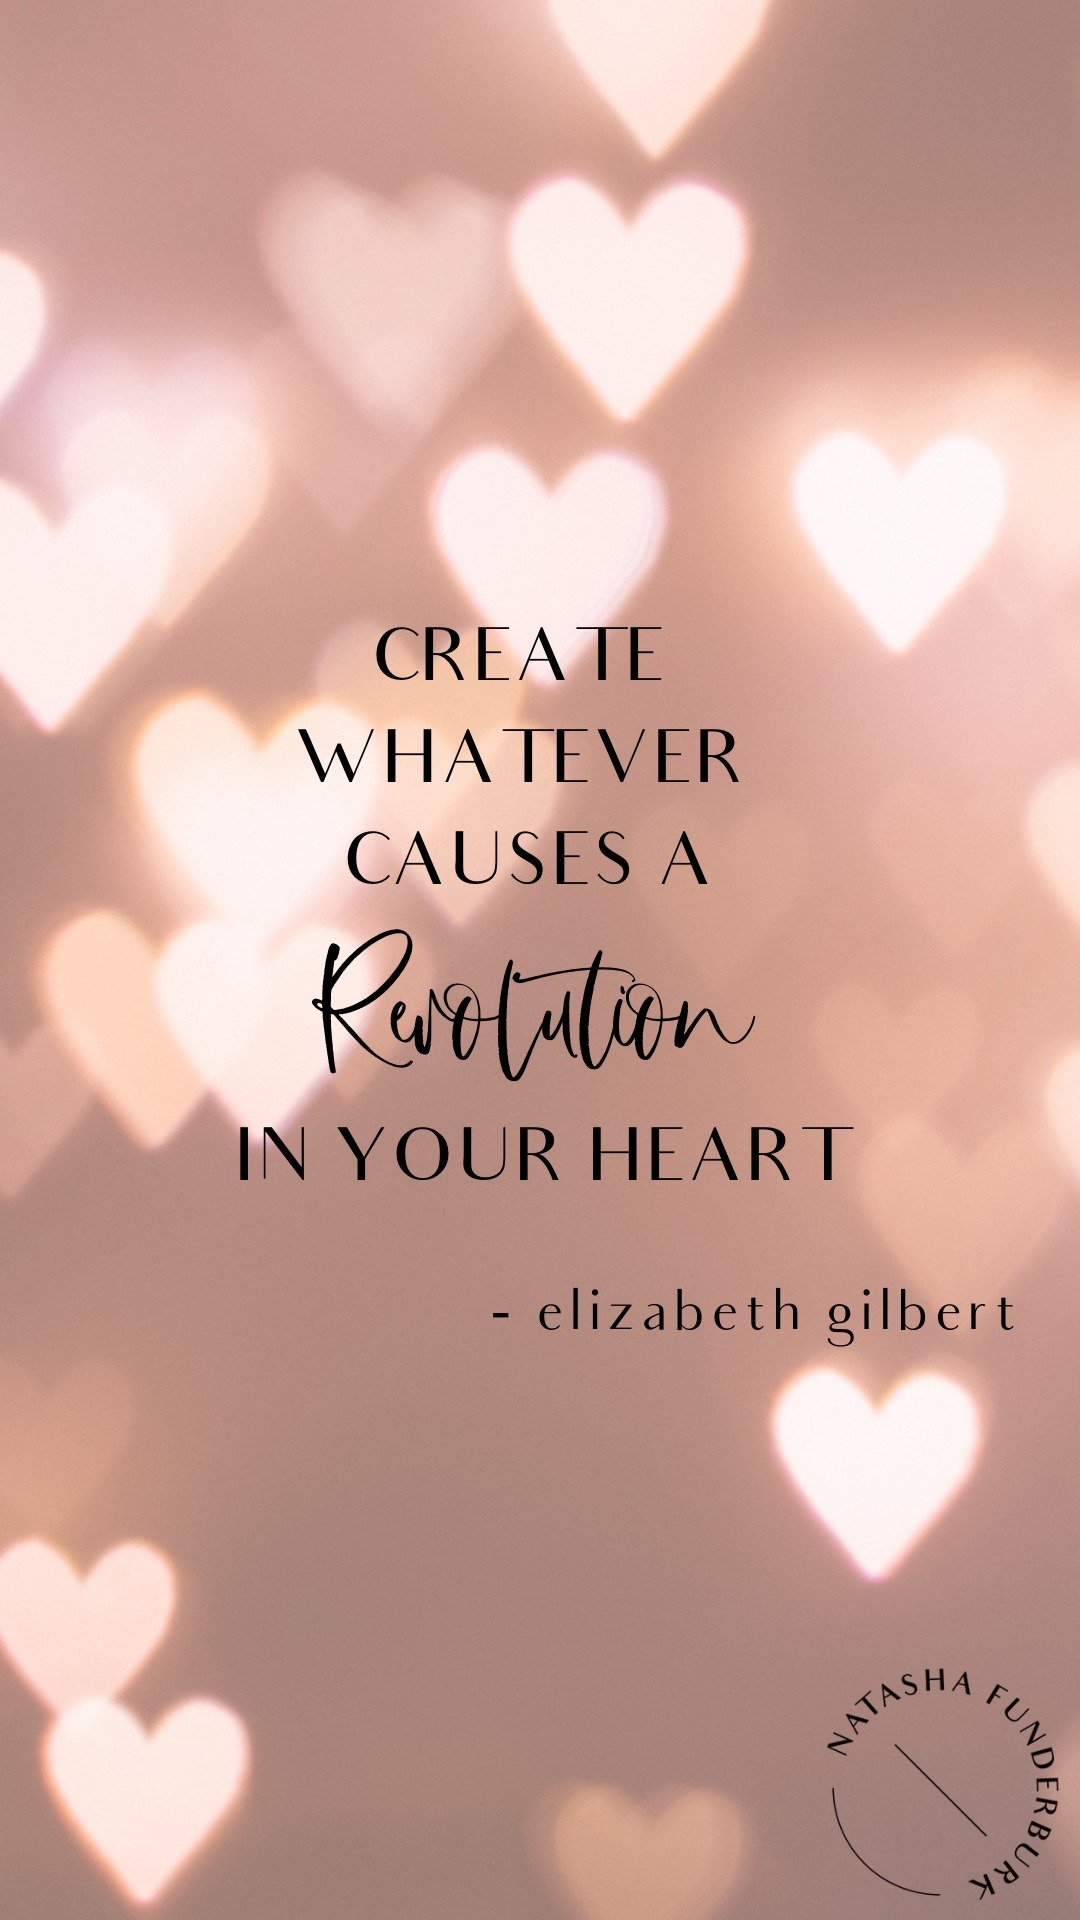 create whatever causes a revolution in your heart elizabeth gilbert